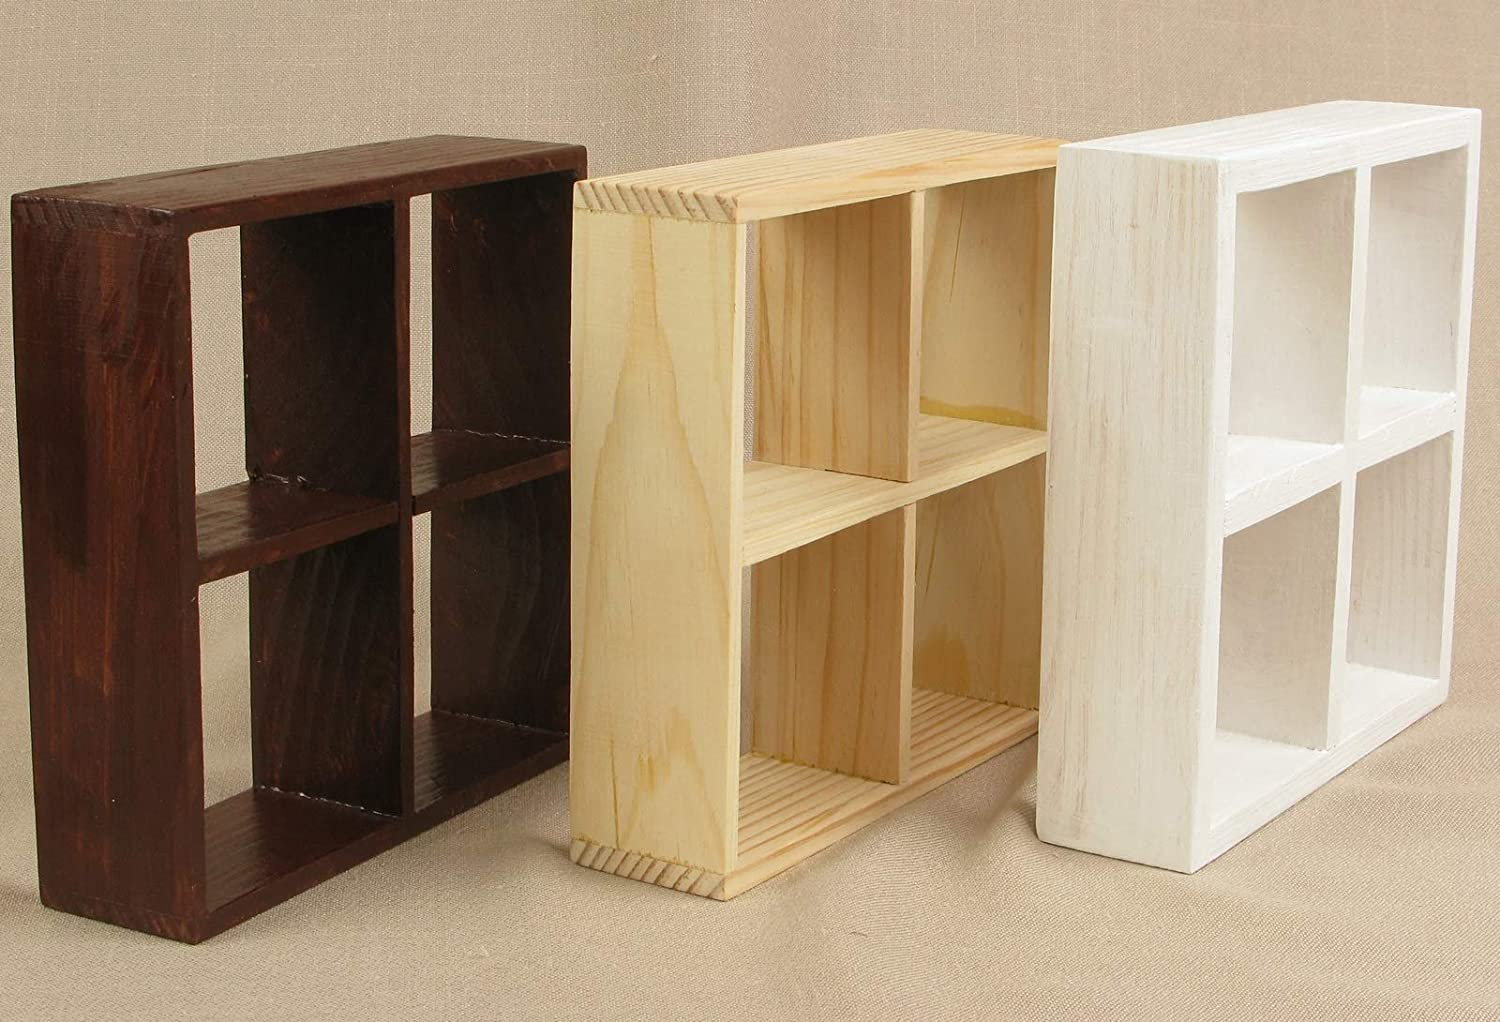 1//6 scale doll house shelve units white {2}  pcs